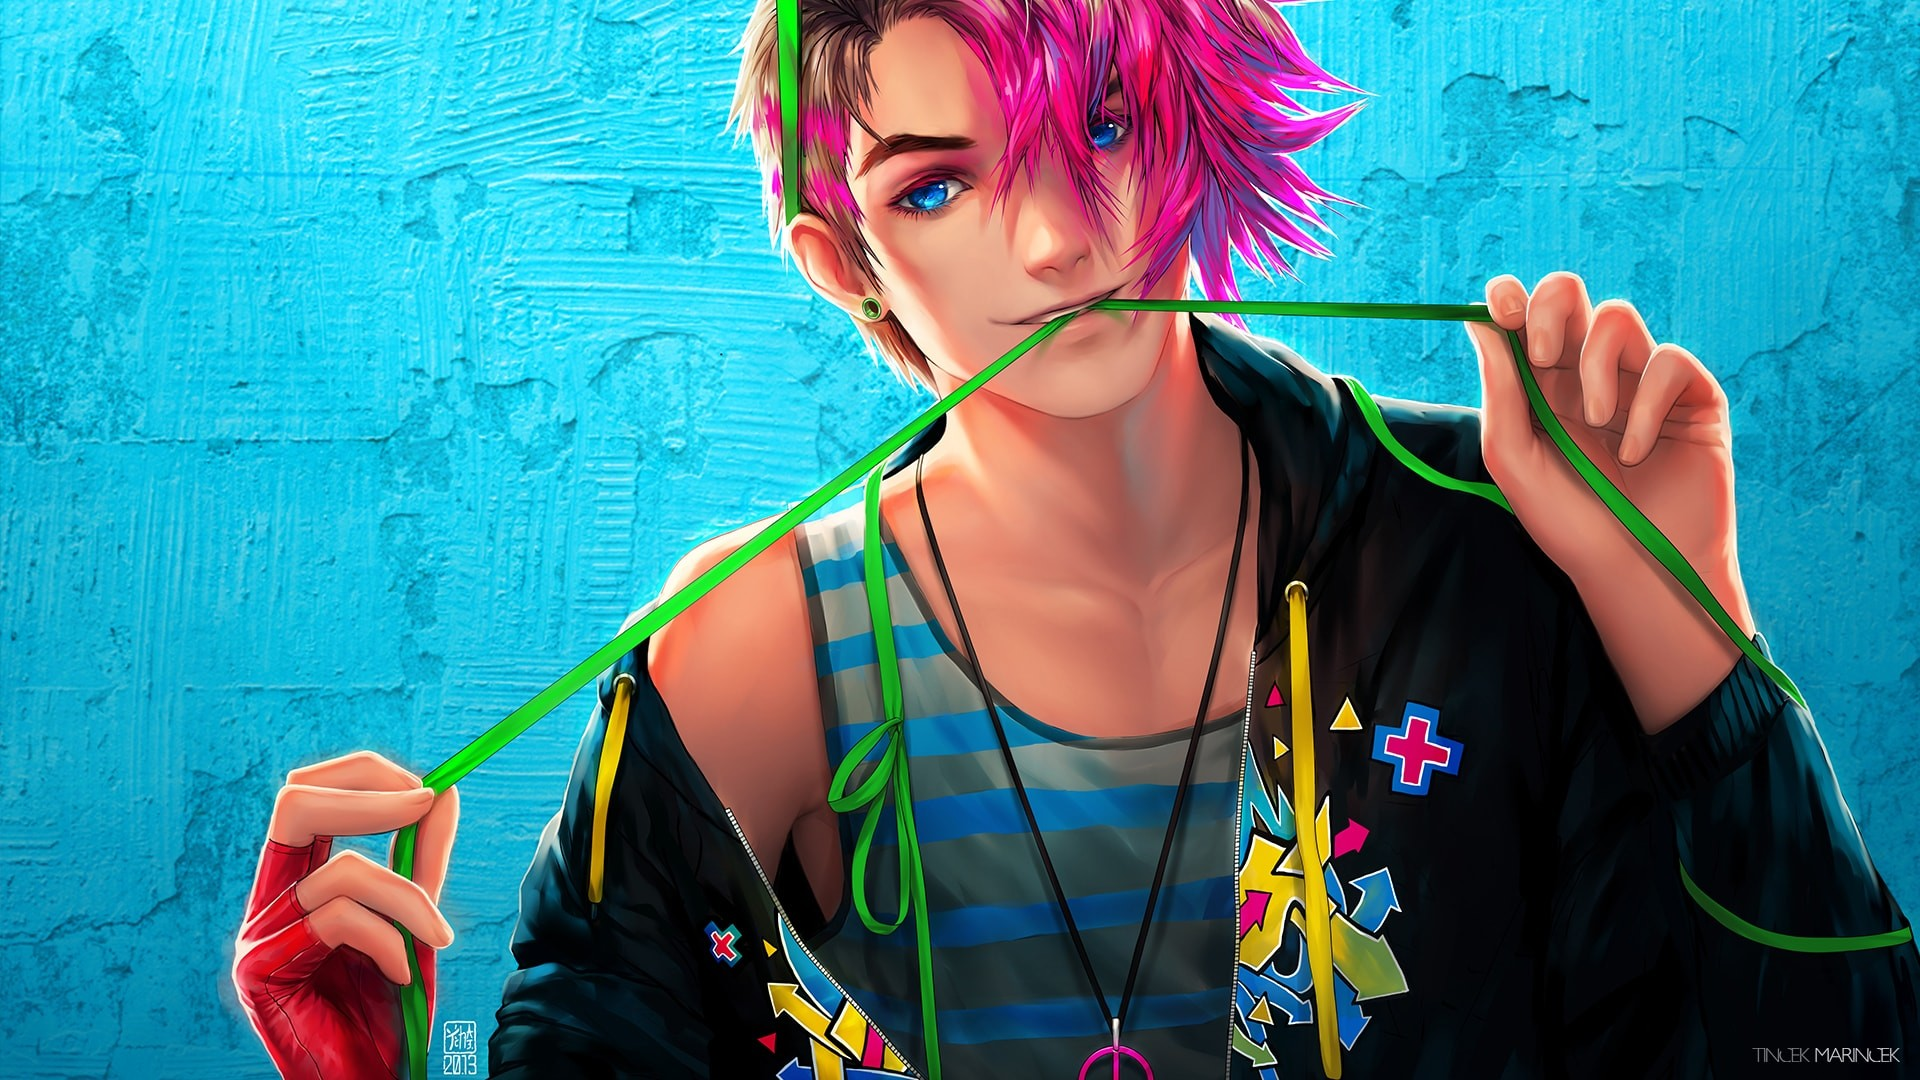 Anime Boy Wallpaper Hd 68 Images HD Wallpapers Download Free Images Wallpaper [1000image.com]